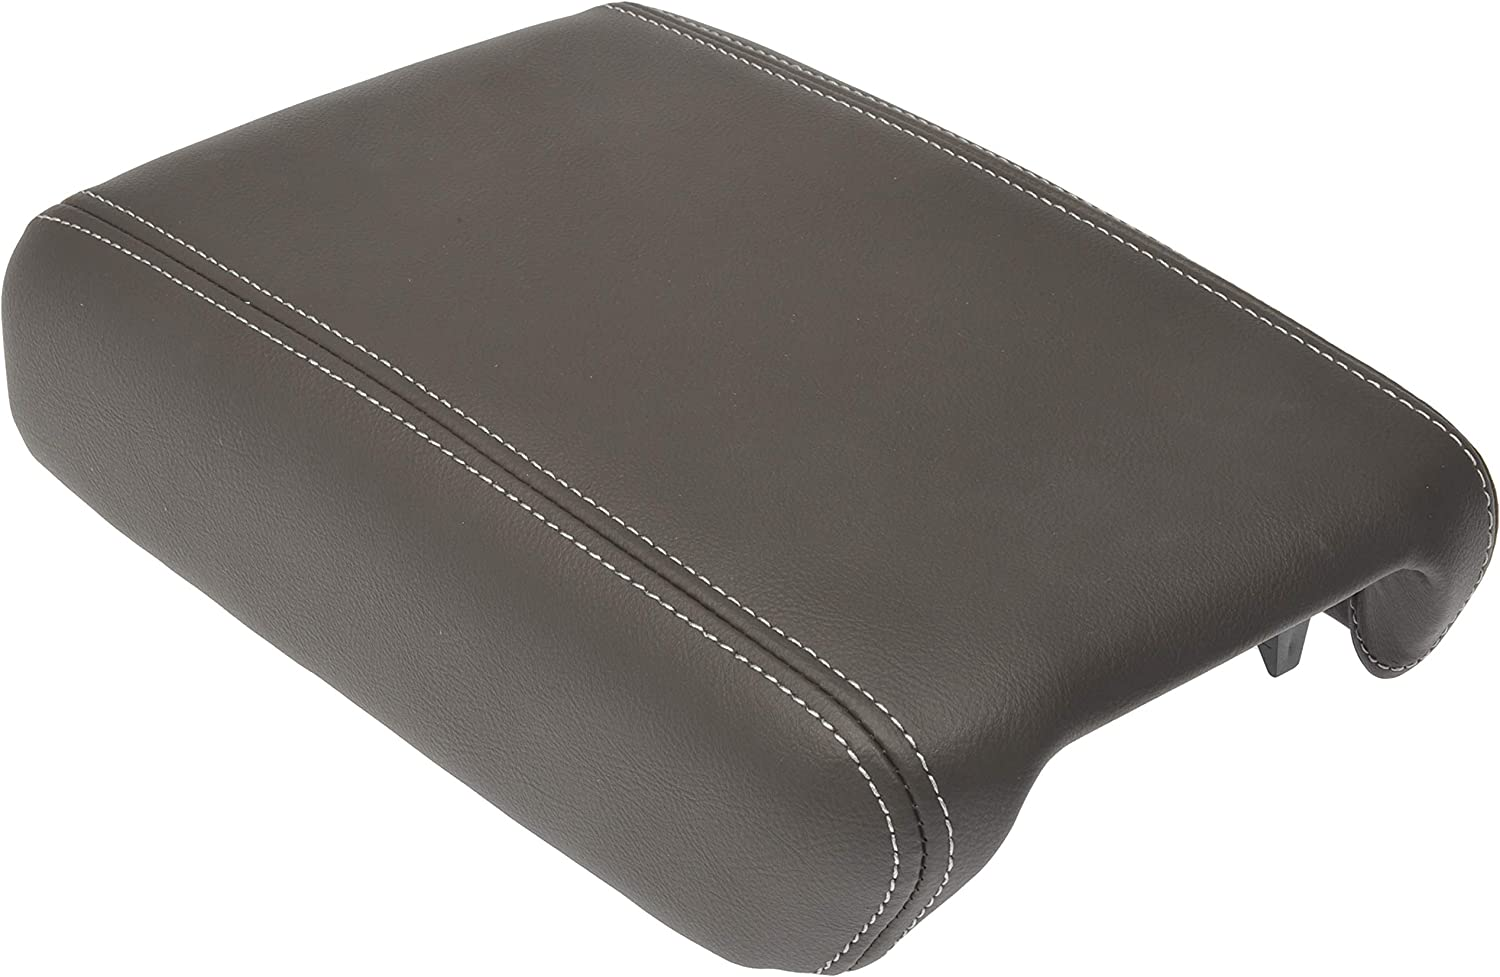 Dorman 925-085 Console Lid Replacement for Select GMC Models, Dark Gray